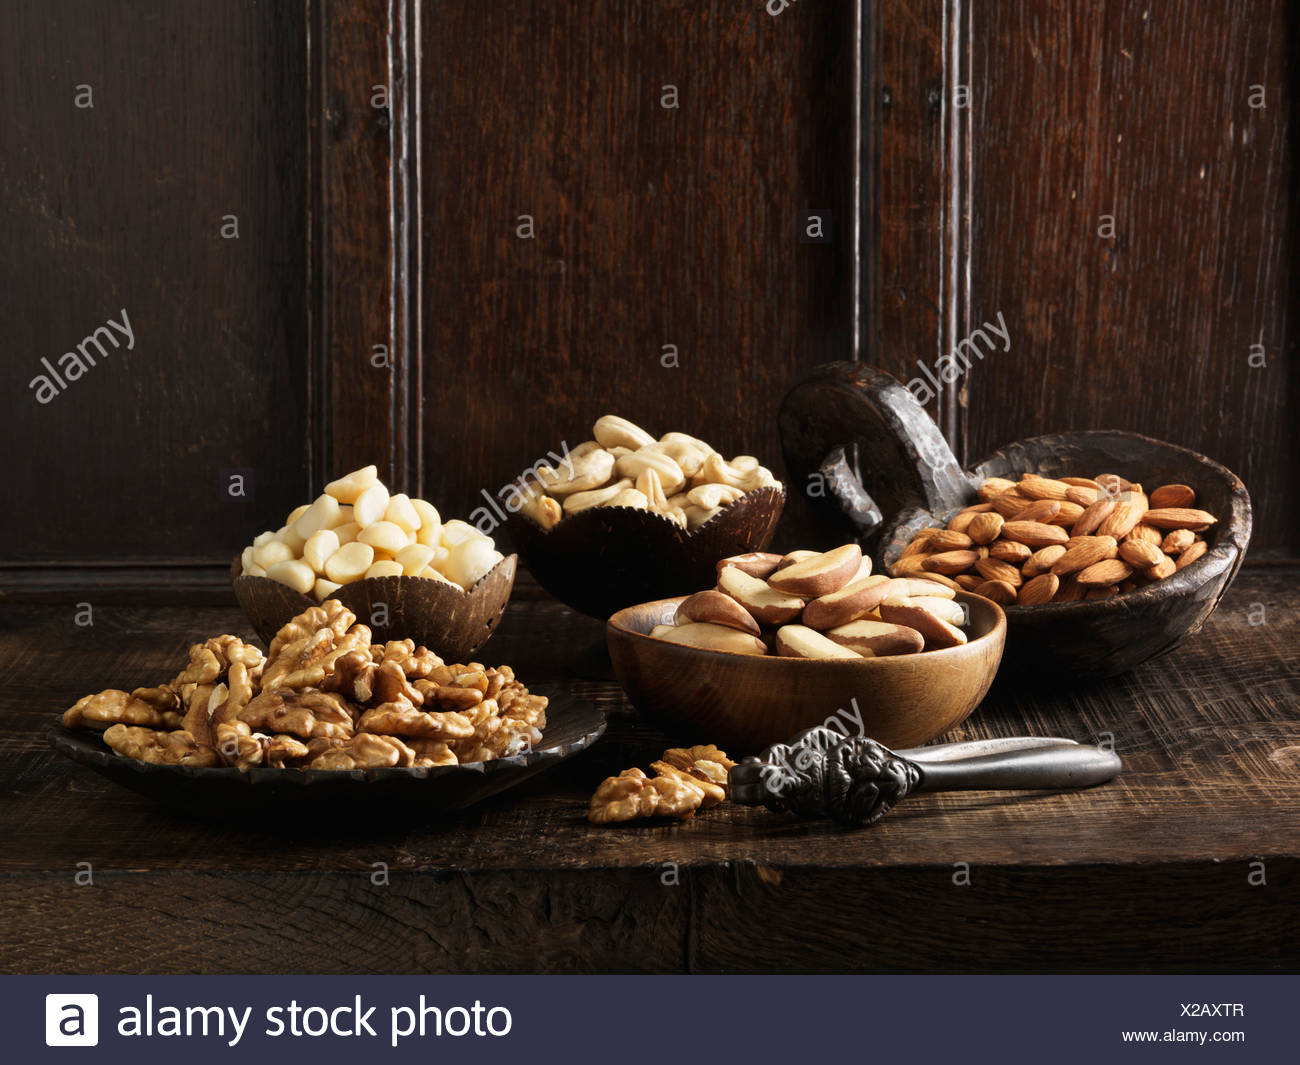 Nuts in assorted serving bowls - Stock Image